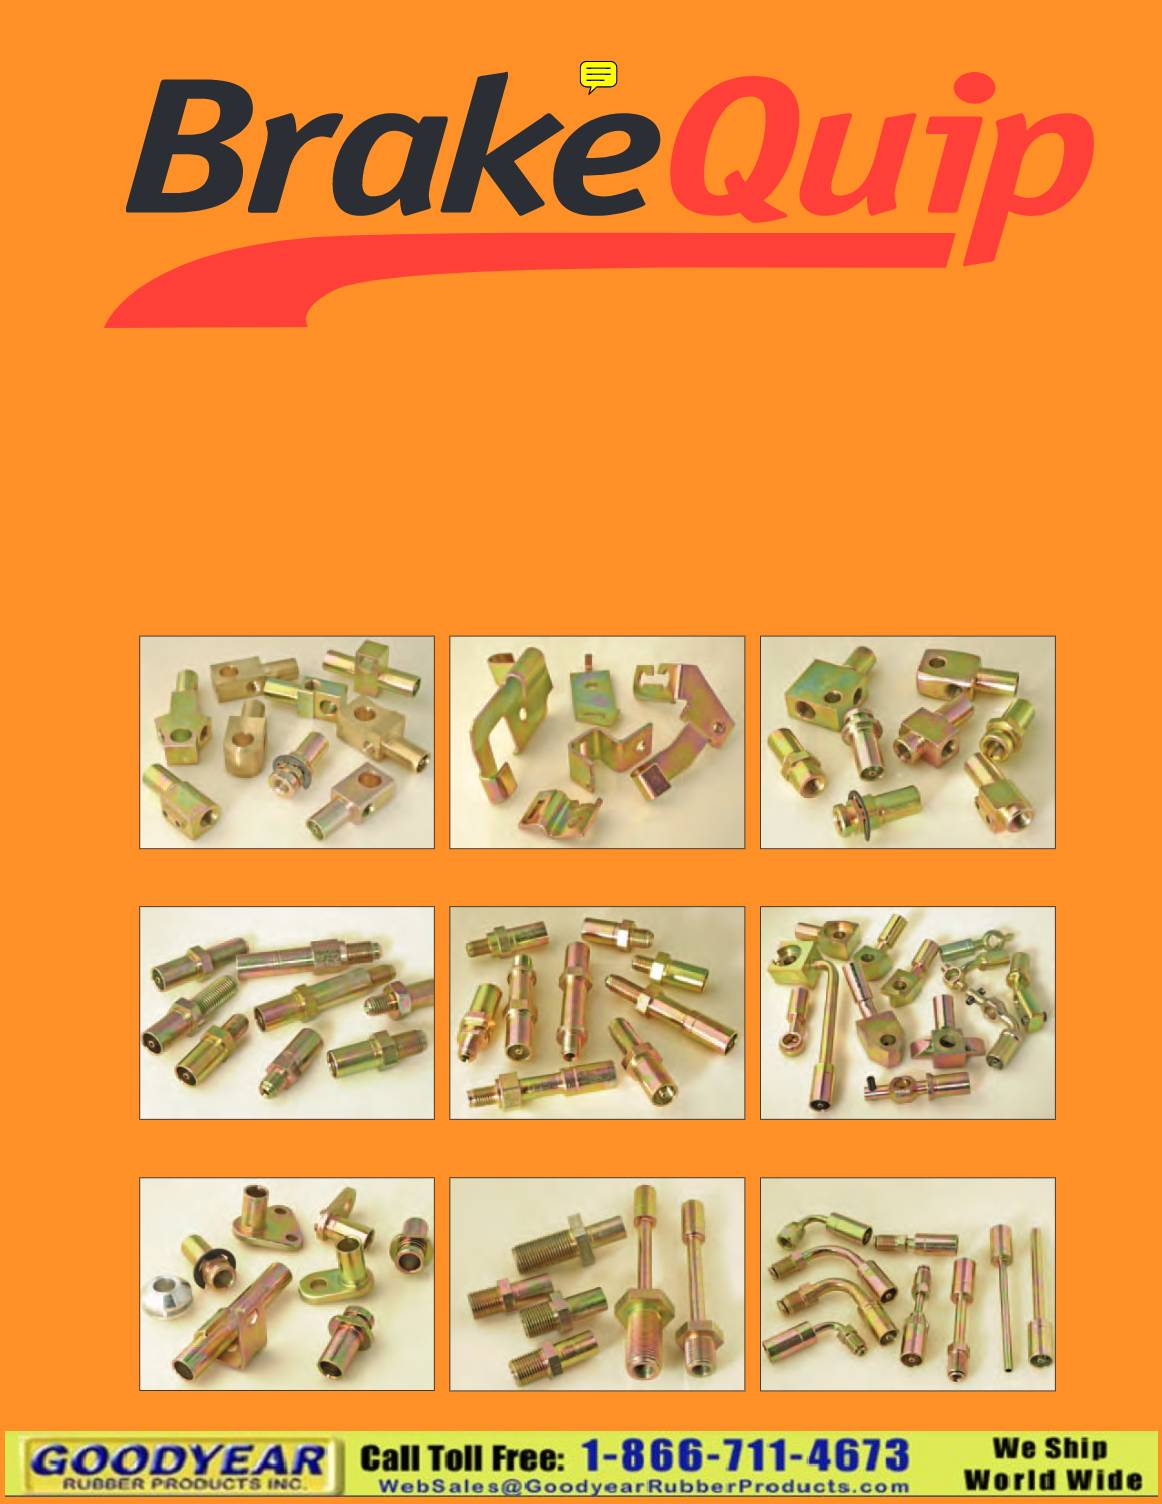 BrakeQuip Brake Hose and Fittings